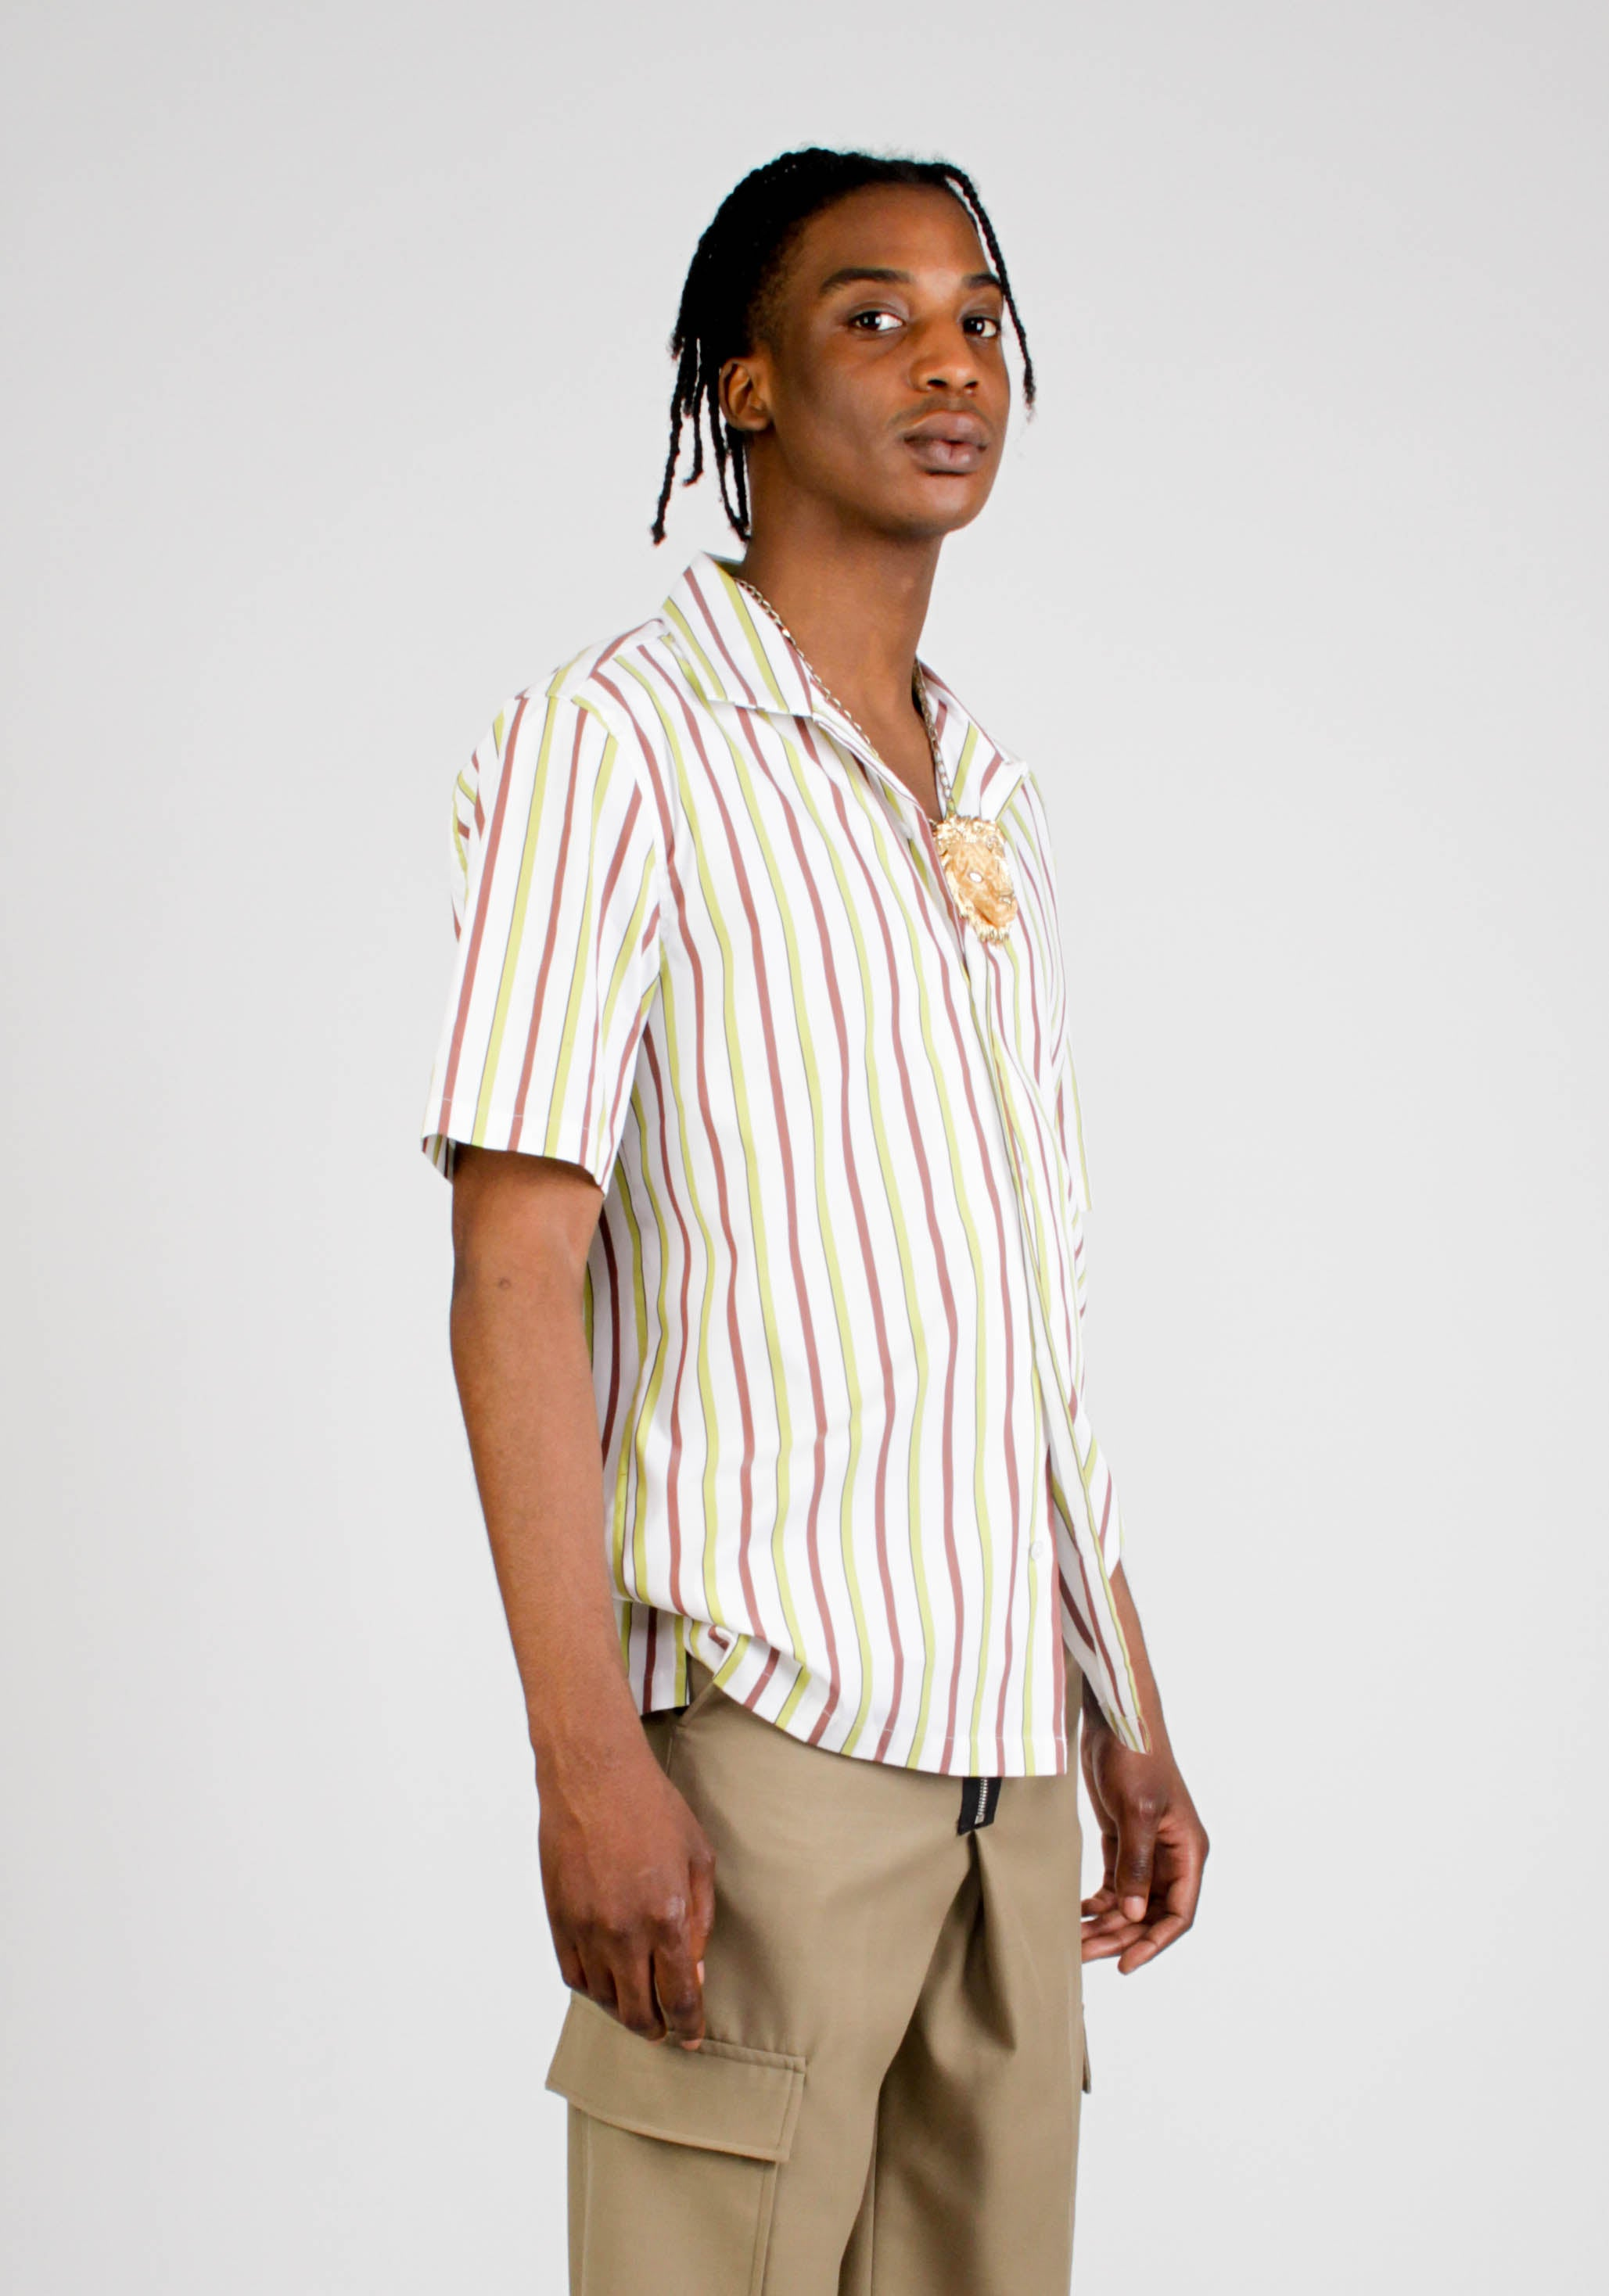 Steven Shortsleeve Shirt